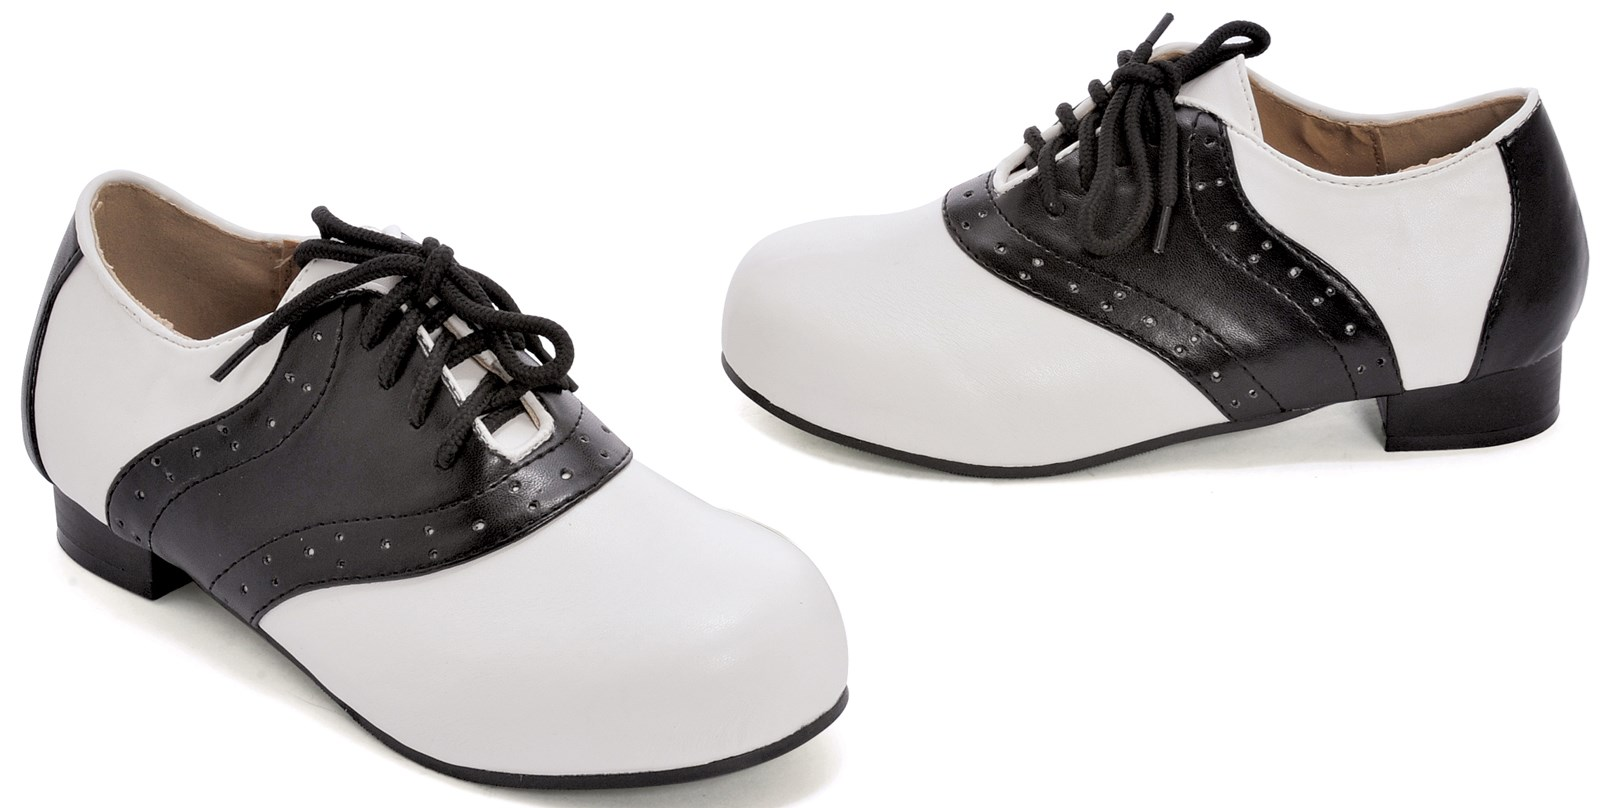 saddle black white child shoes buycostumes